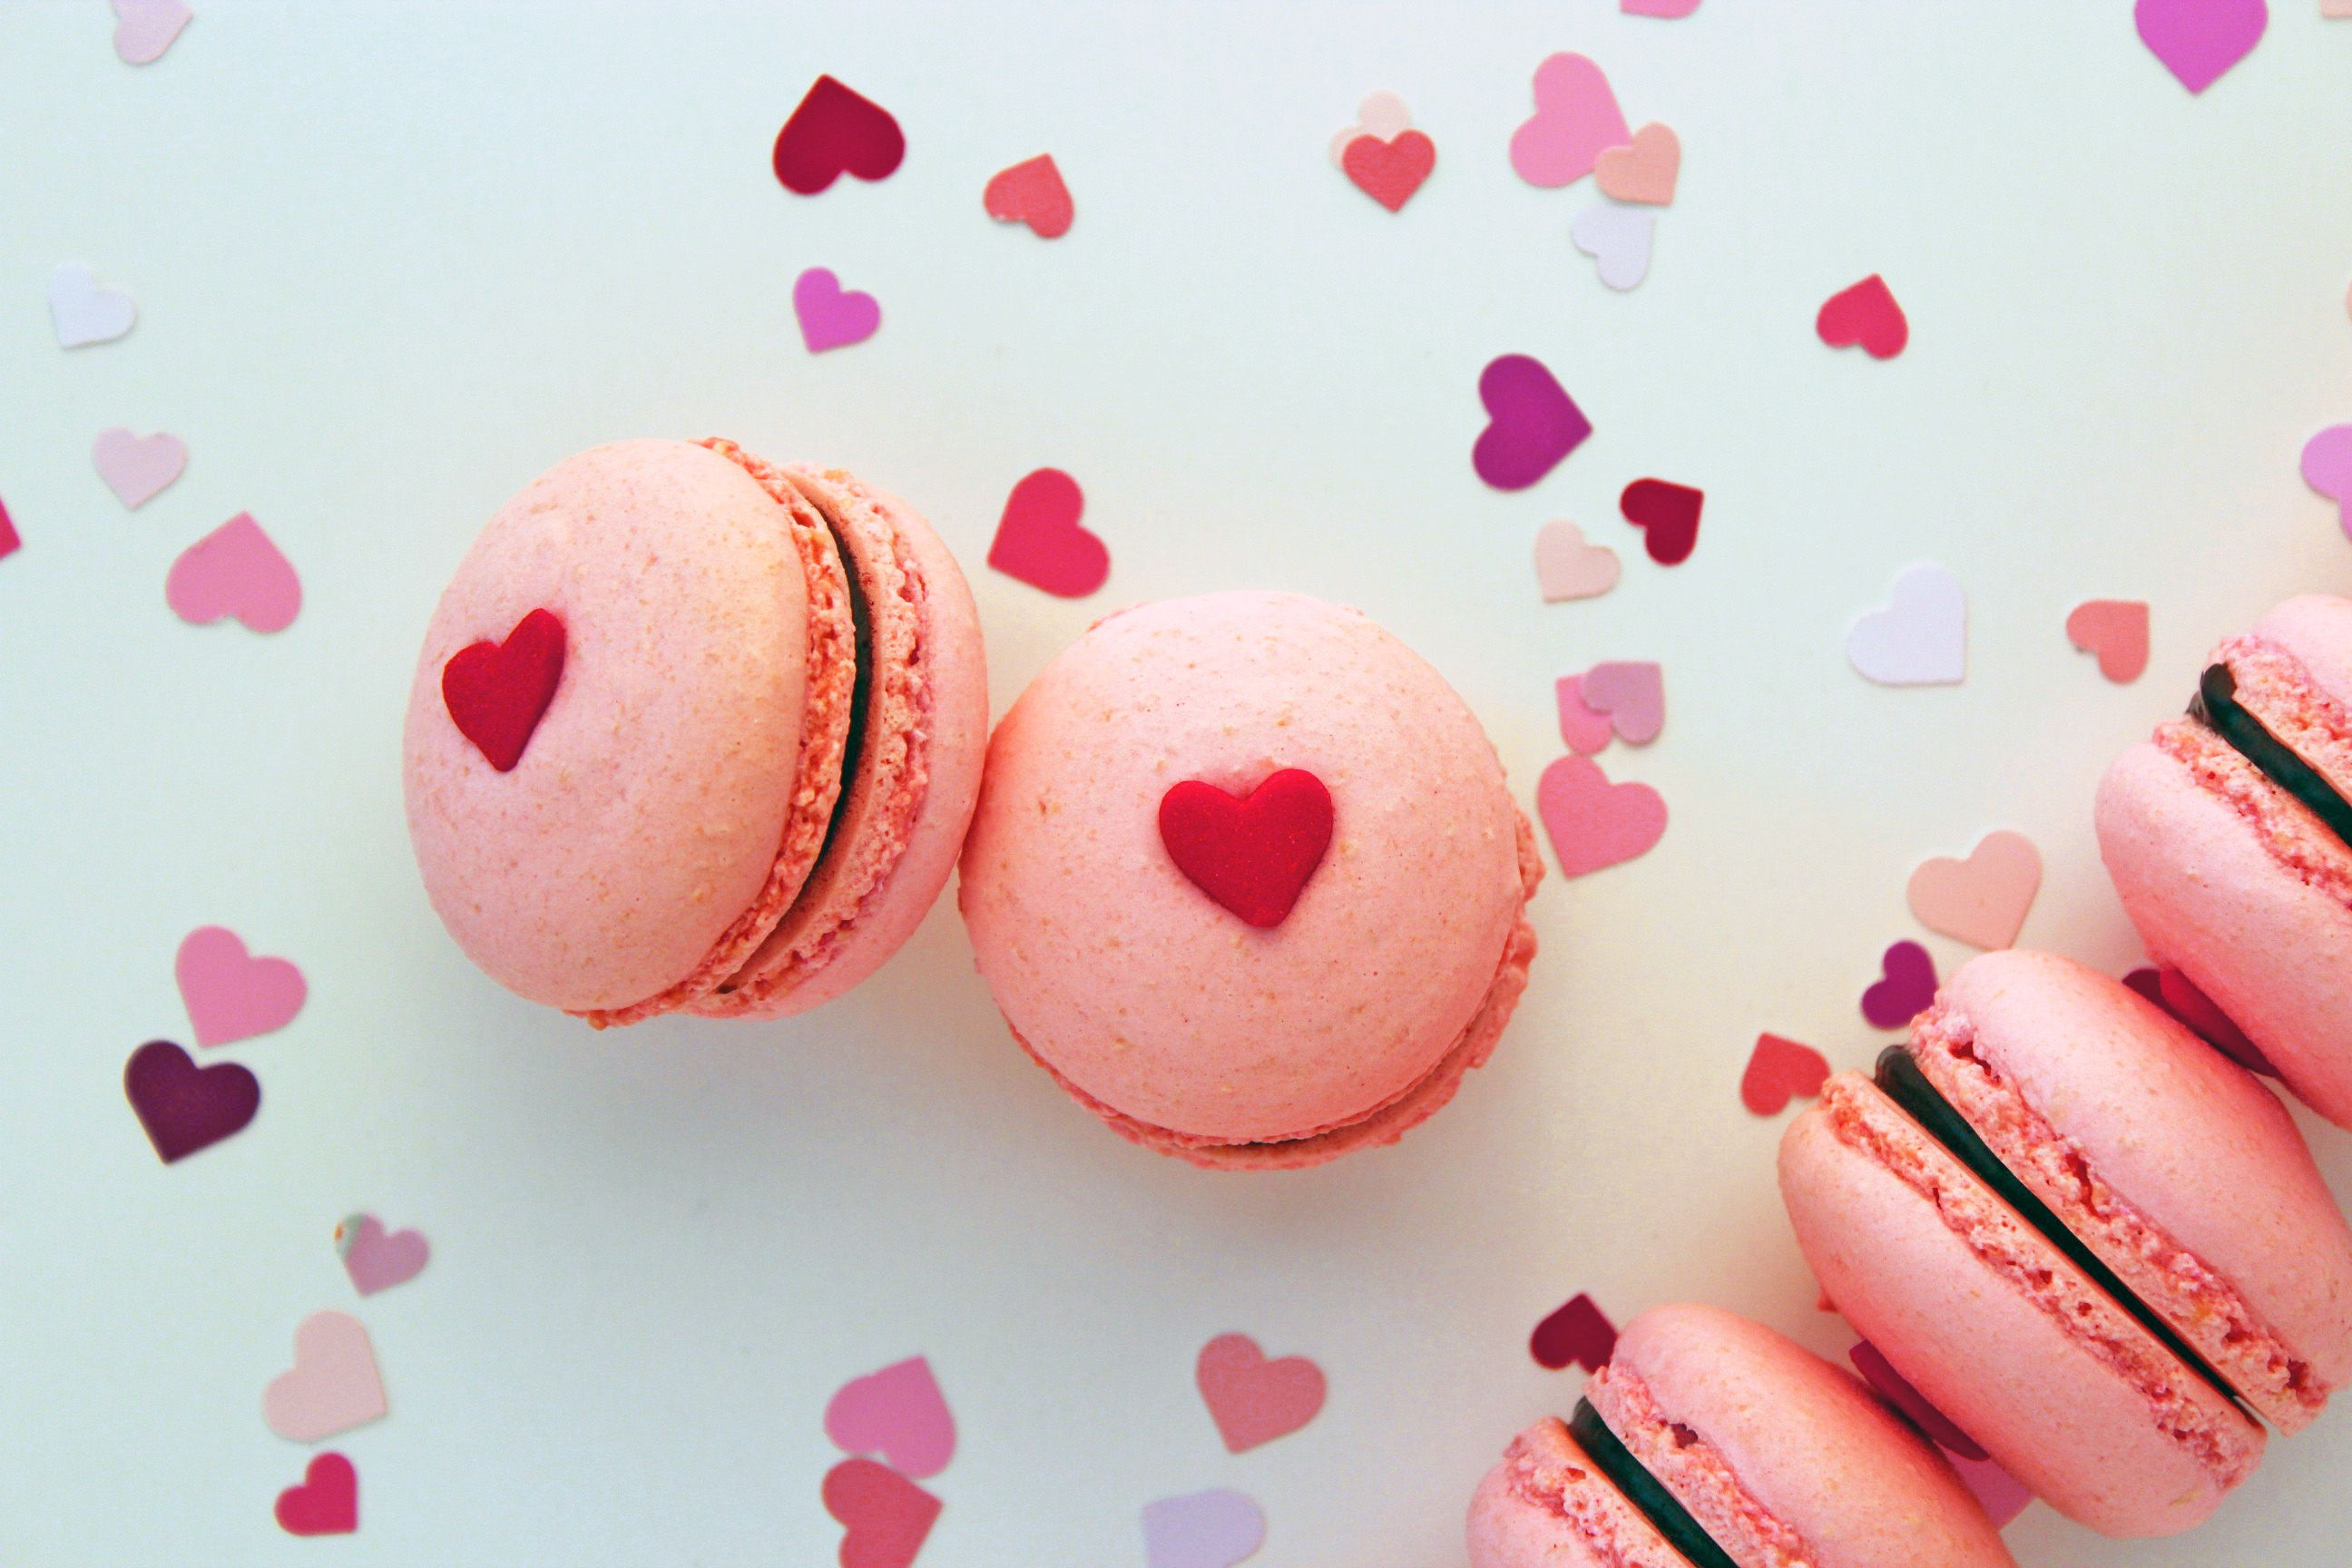 jumbo heart quins look adorable on these pink macarons | delicious